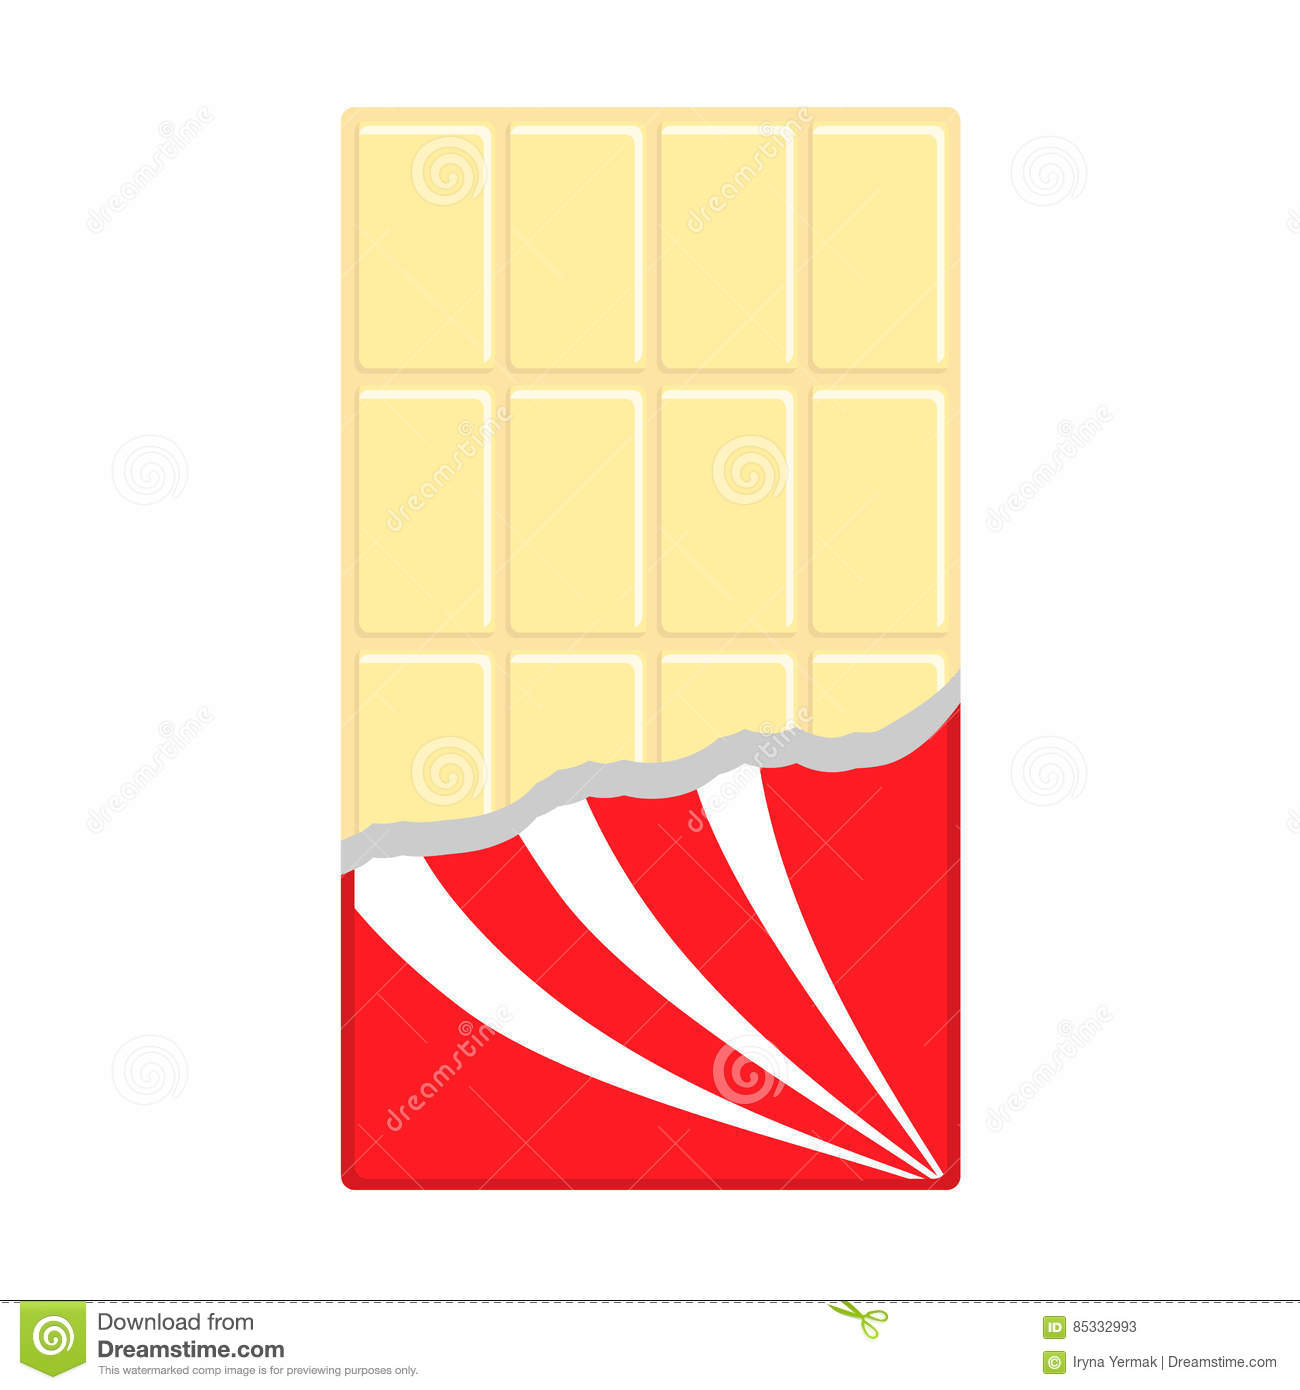 parallelogram shaped food - photo #21